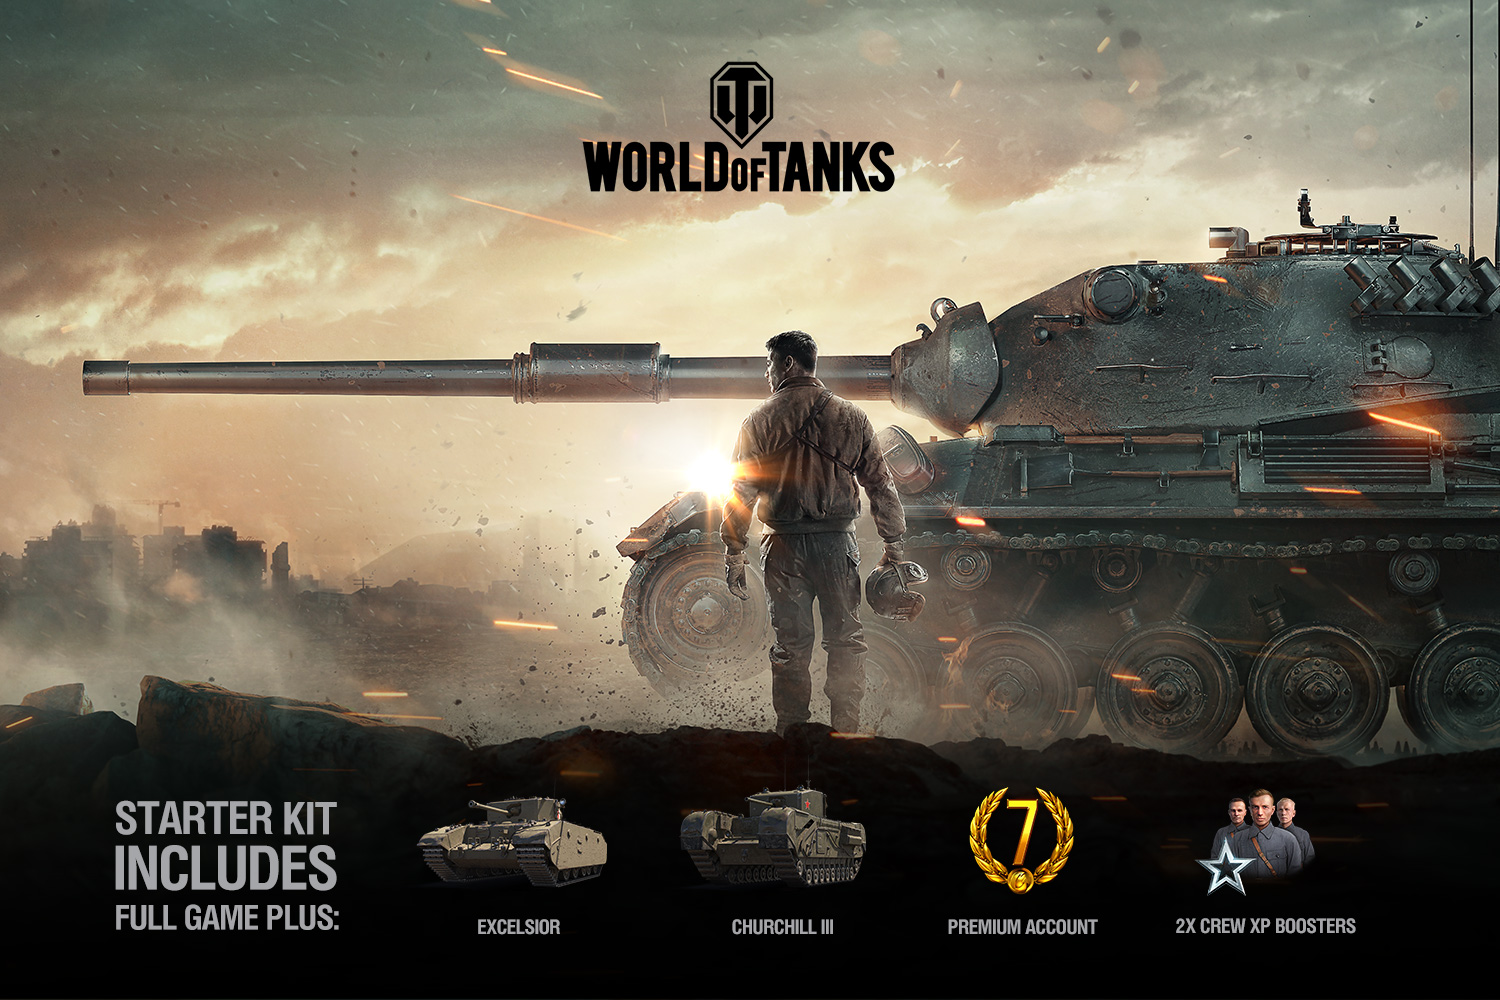 World of Tanks offers a free Starter Kit to all members